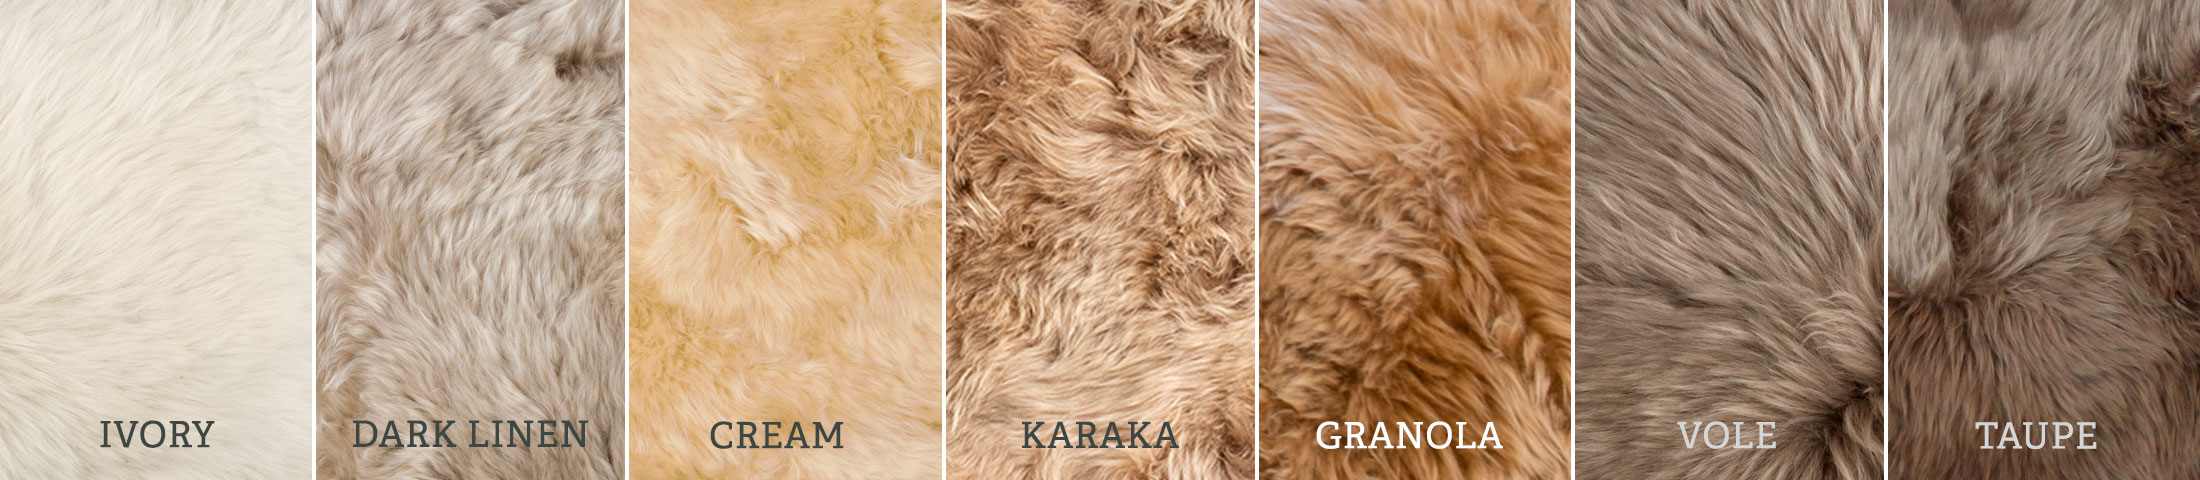 longwool-neutrals-light